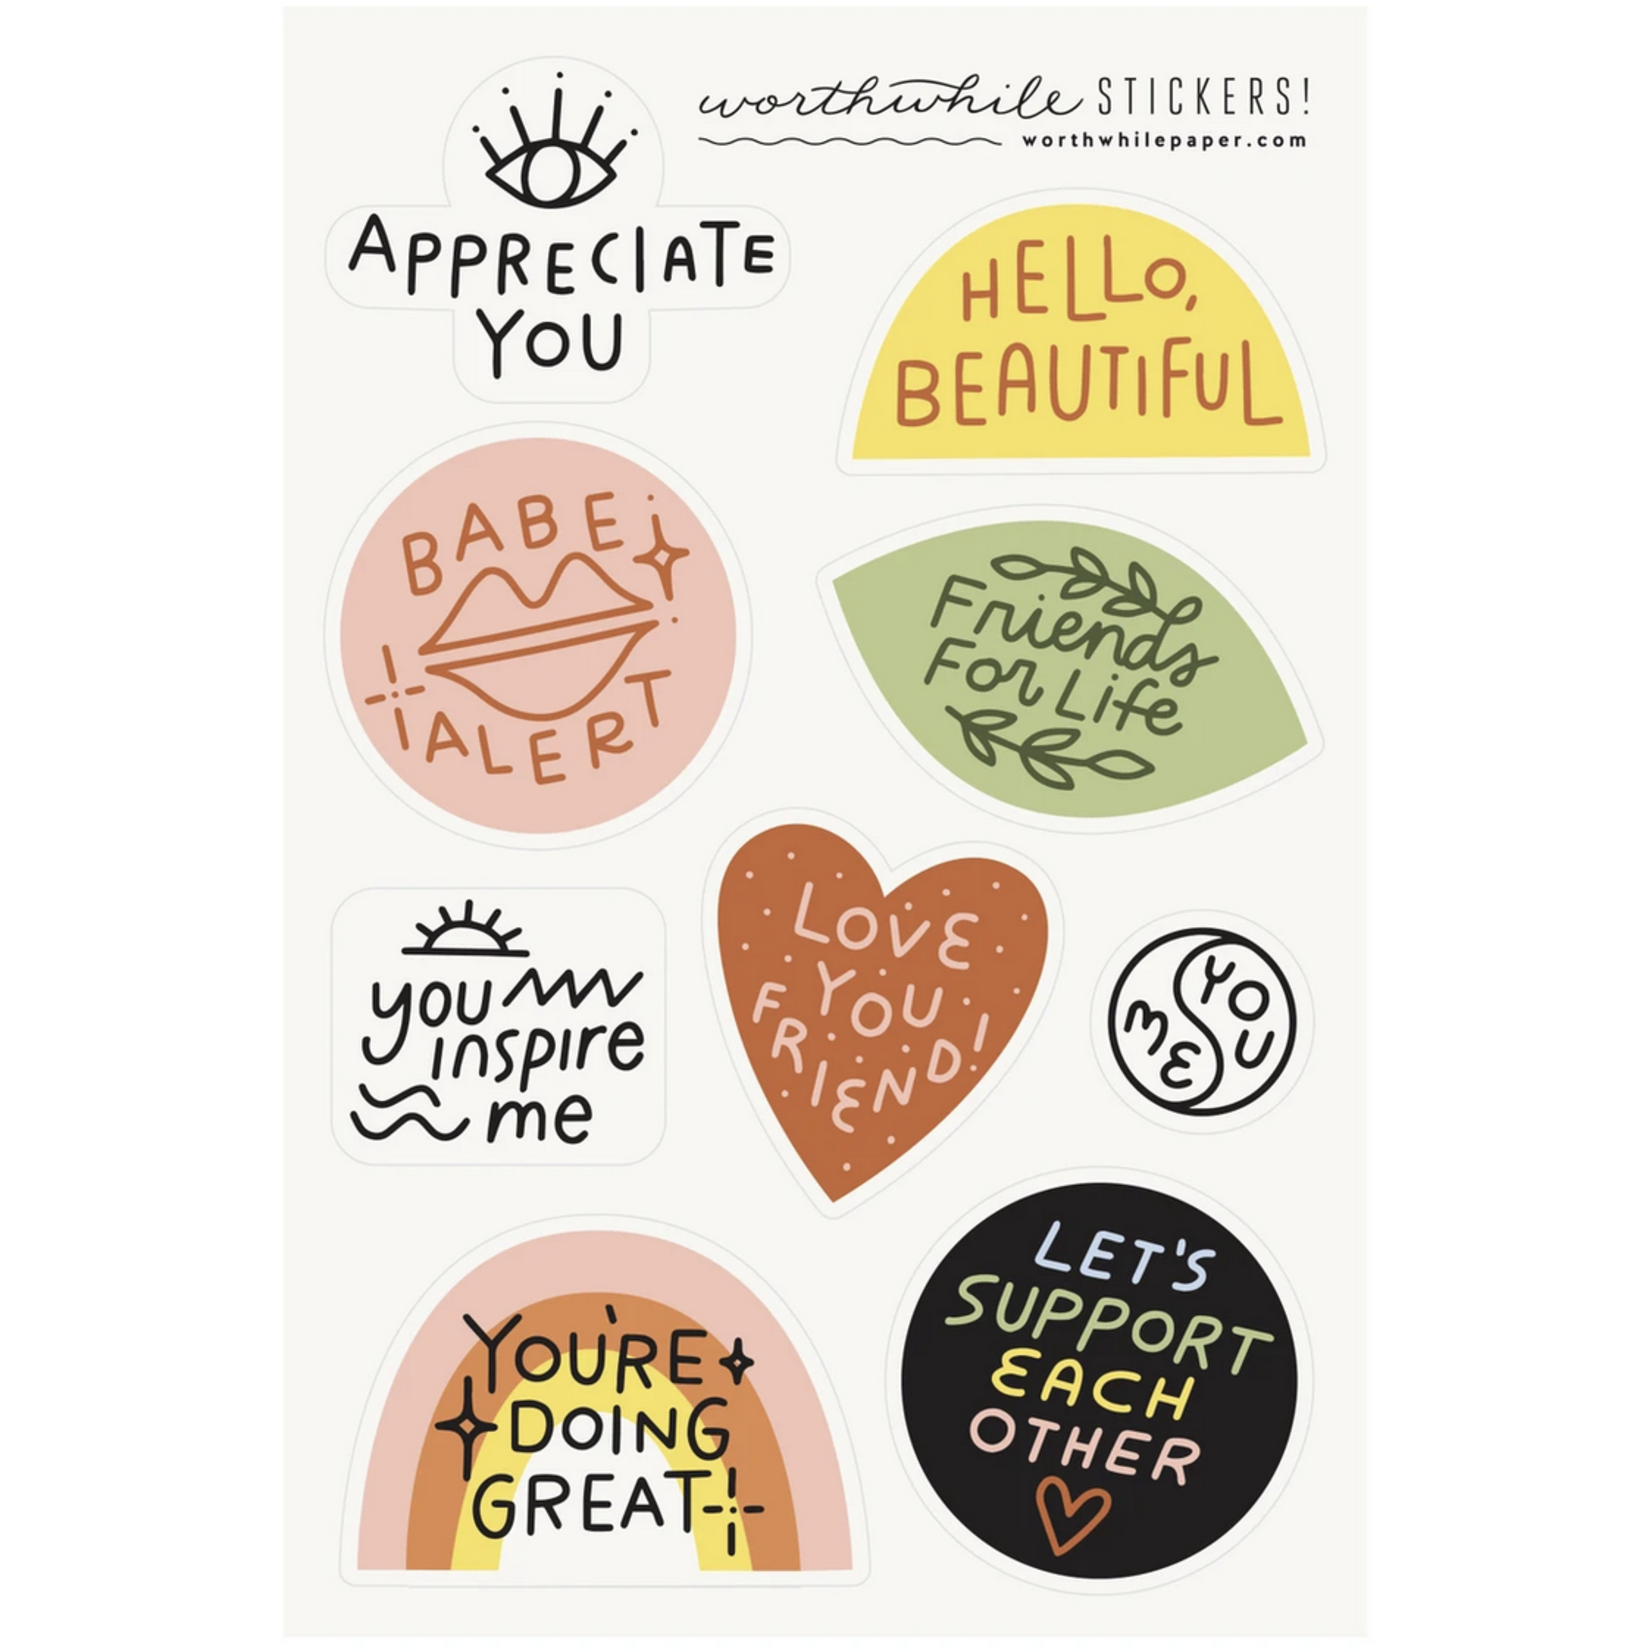 Worthwhile Paper Worthwhile Paper Sticker Sheet Sets